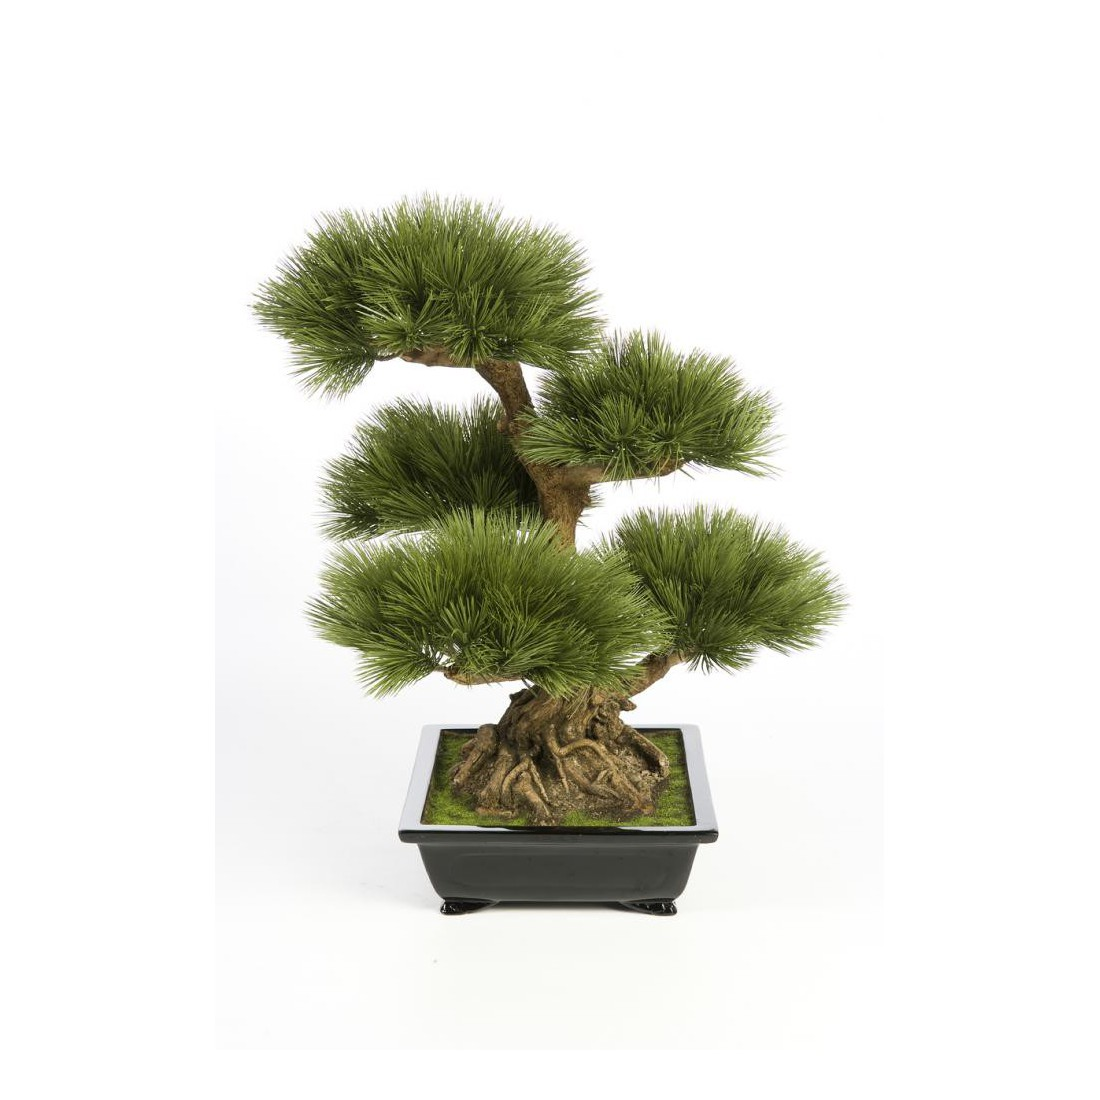 bonsai artificiel pin 60 cm bonsa s mini plantes bonsa s artificiels artificielles reflets. Black Bedroom Furniture Sets. Home Design Ideas